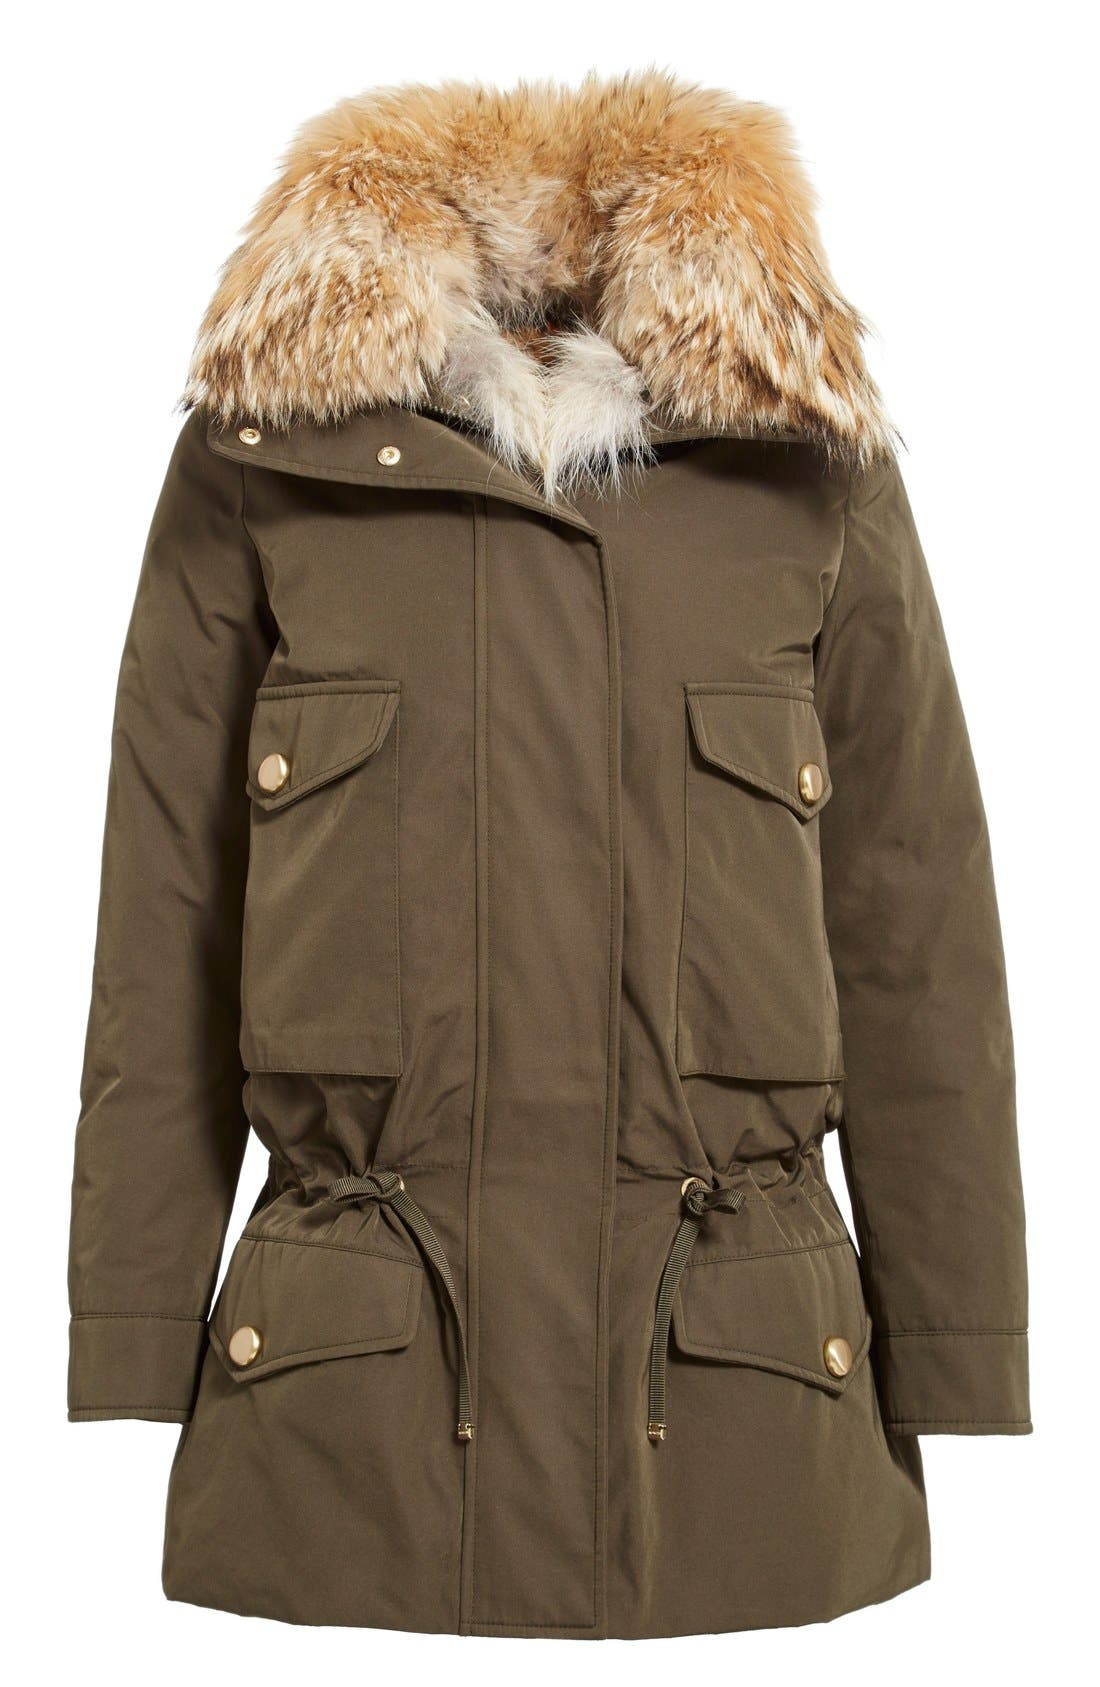 'Margarita' Down Jacket with Removable Genuine Coyote Collar and Rabbit Fur Vest,                             Alternate thumbnail 6, color,                             Olive